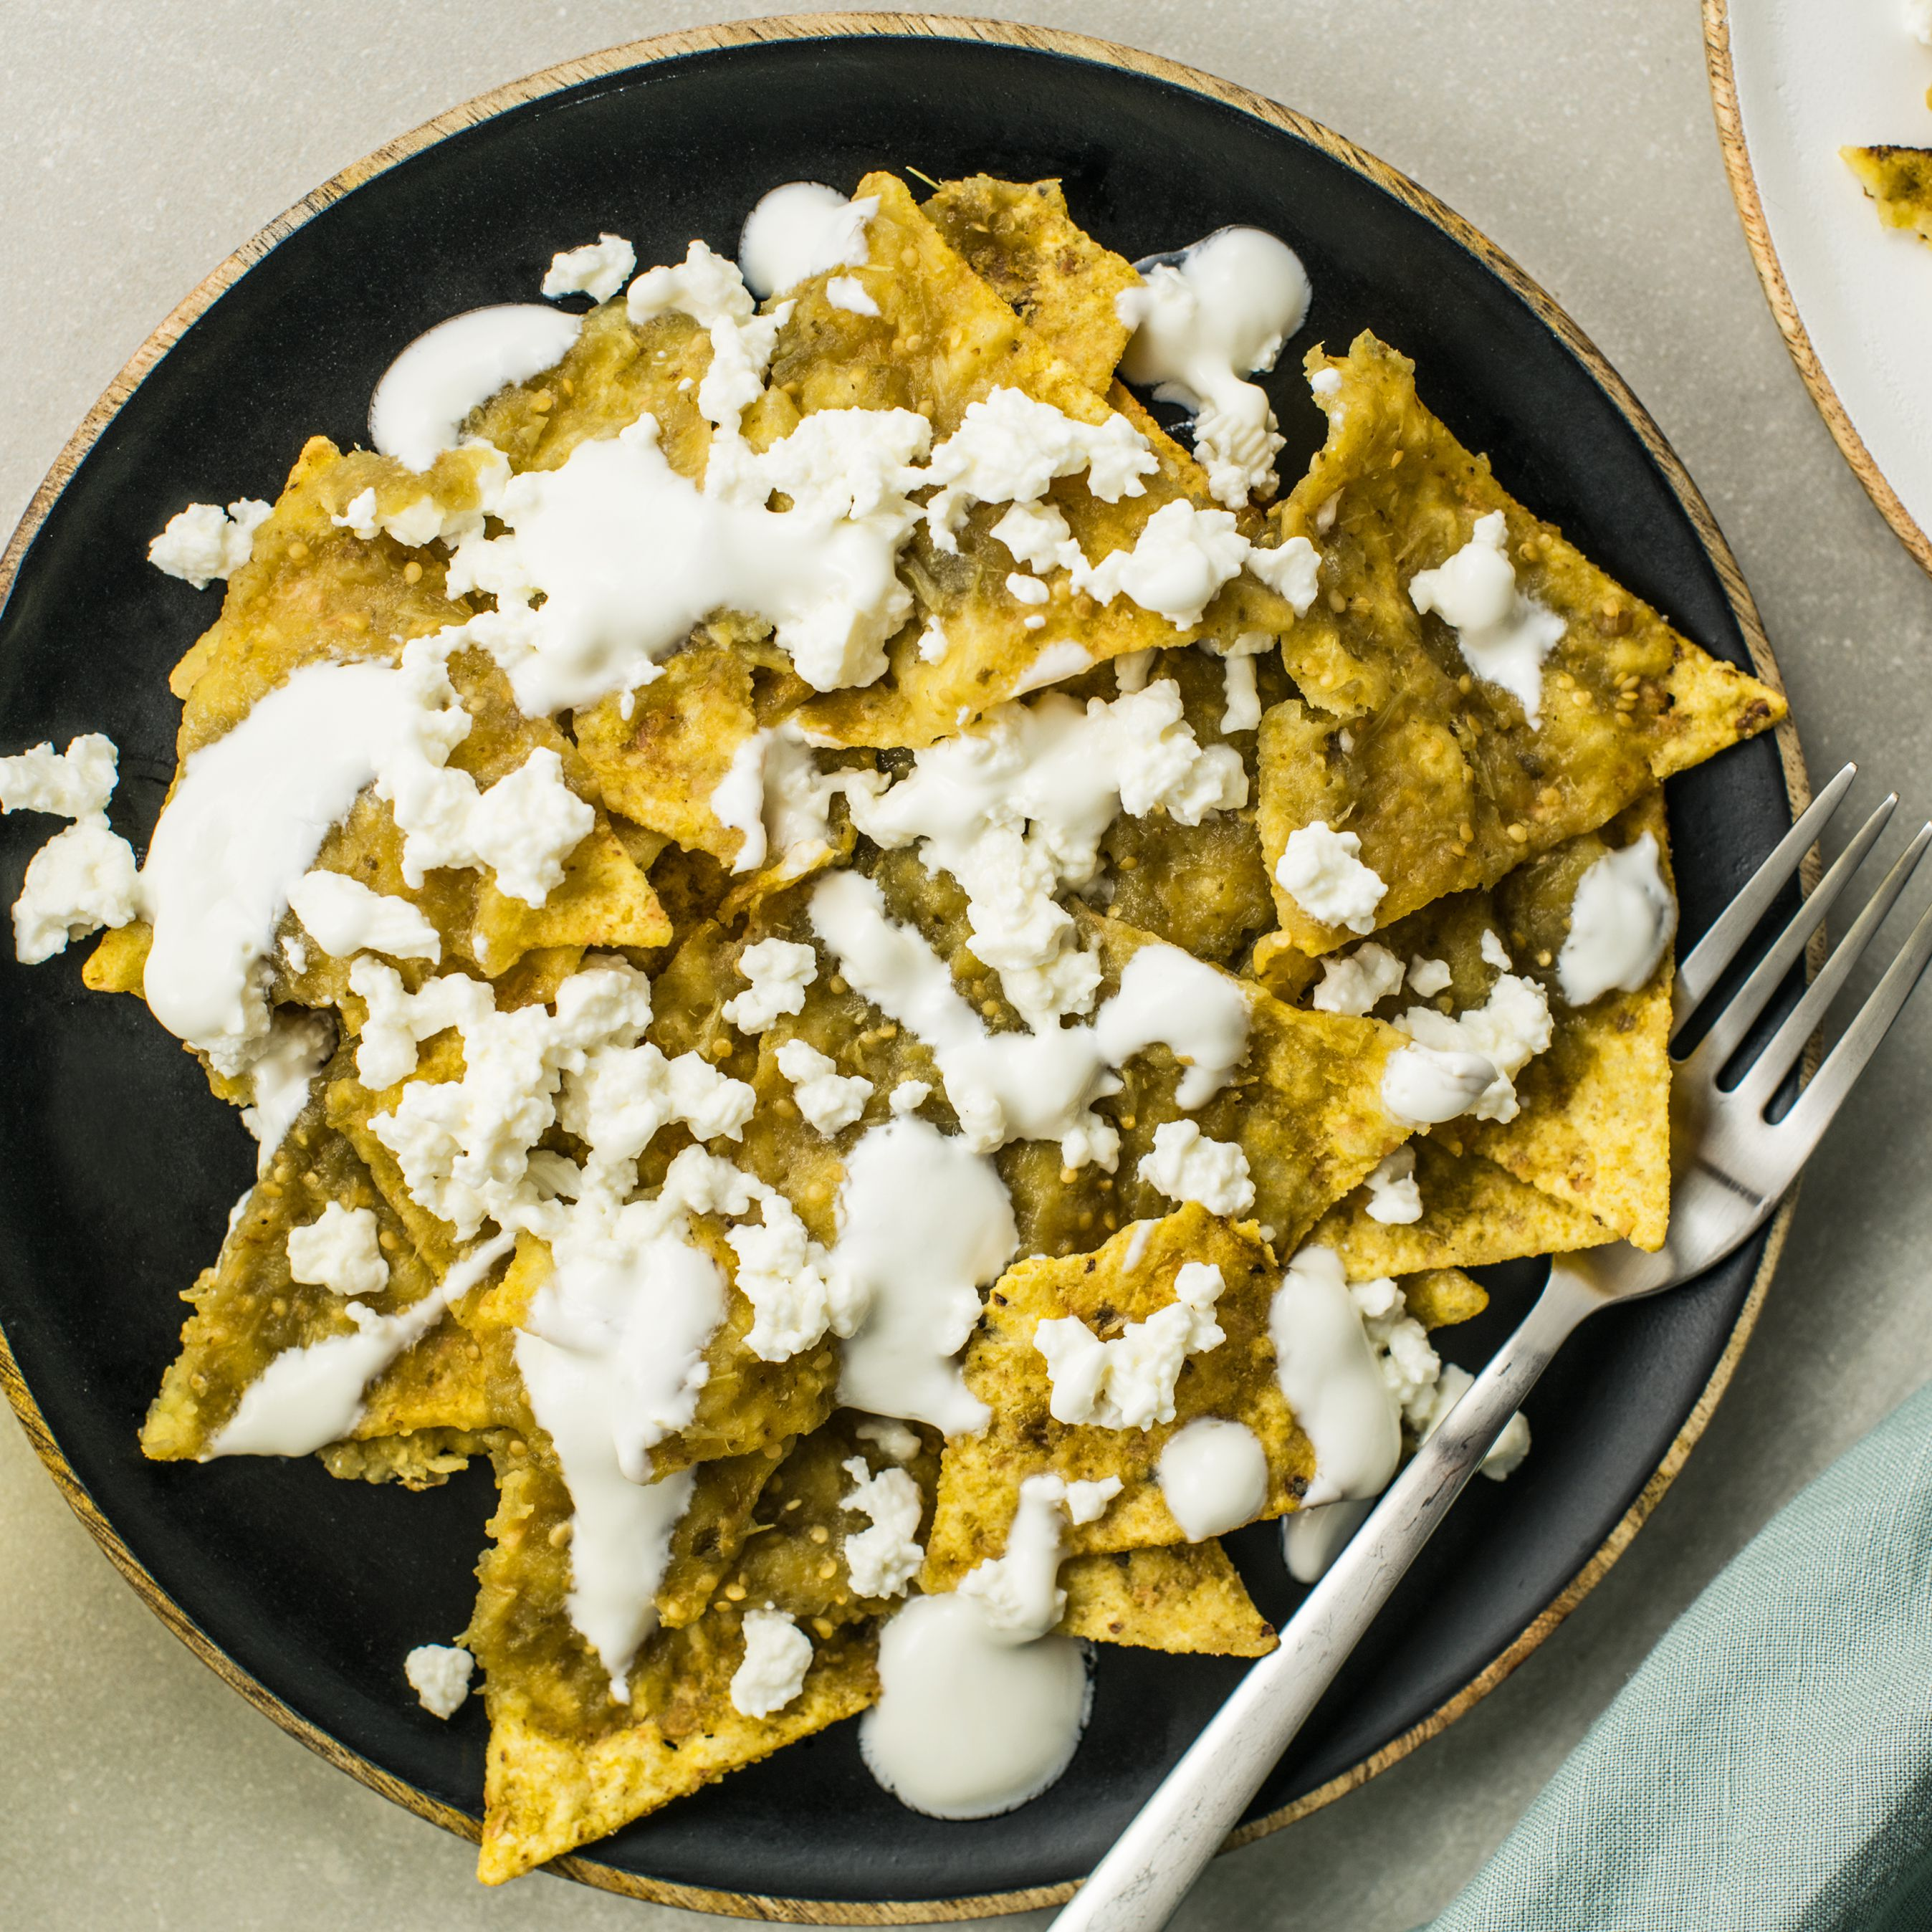 A Simple Mexican Recipe: How to Make Chilaquiles With Tortilla Chips